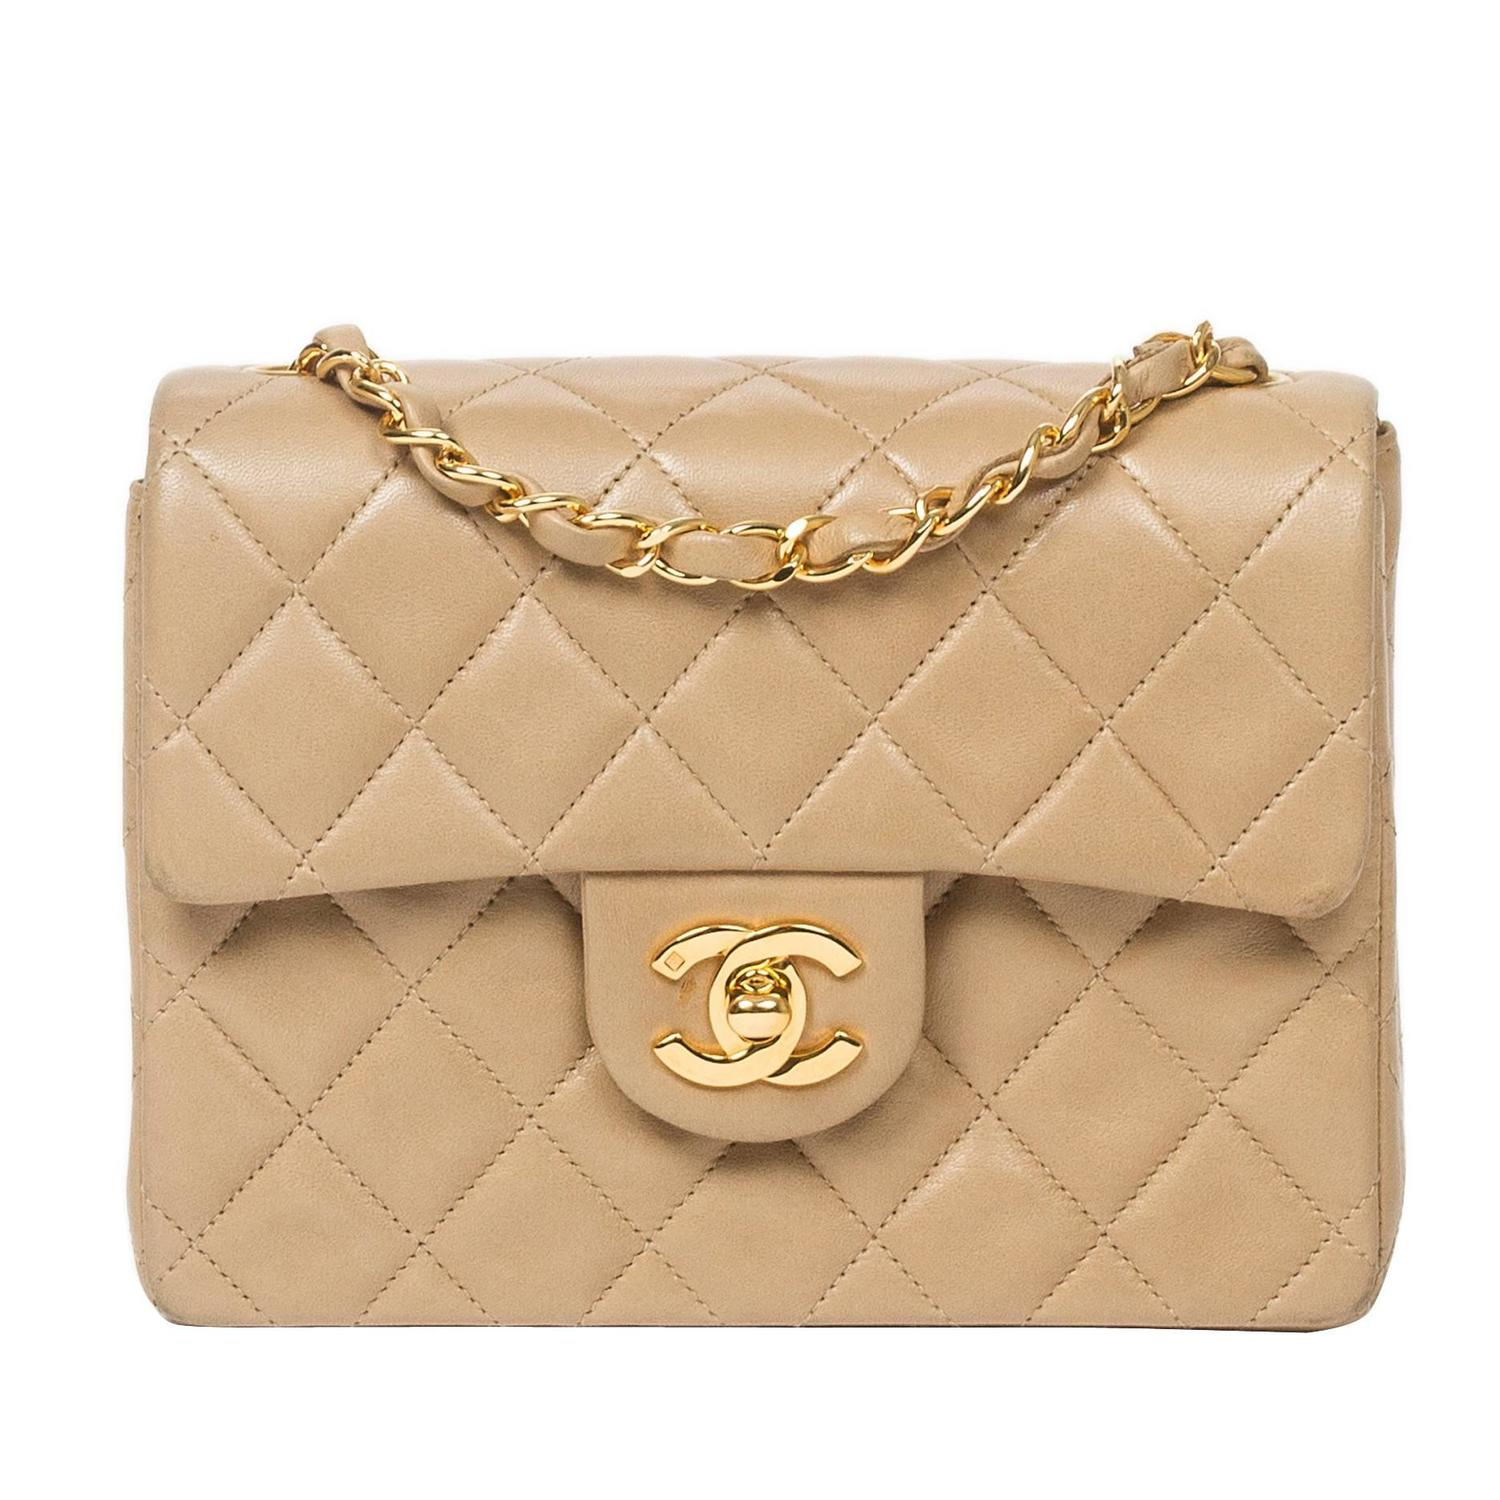 Leather quilted handbags and purses - Leather Quilted Handbags And Purses 32